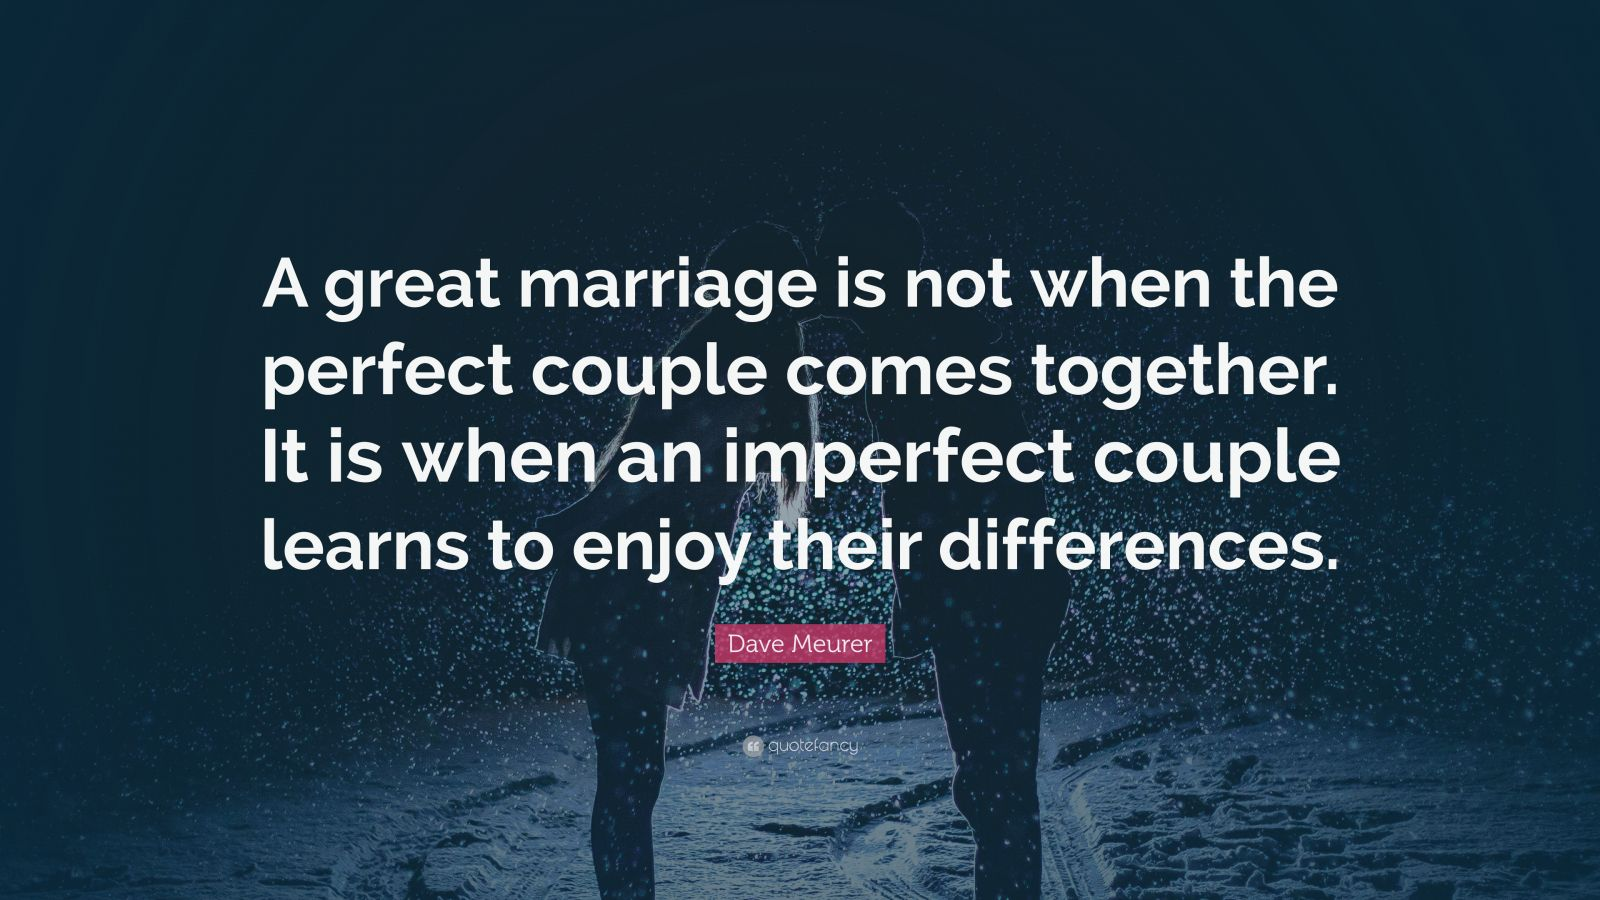 "Marriage Quotes: ""A great marriage is not when the perfect couple comes together. It is when an imperfect couple learns to enjoy their differences."" — Dave Meurer"